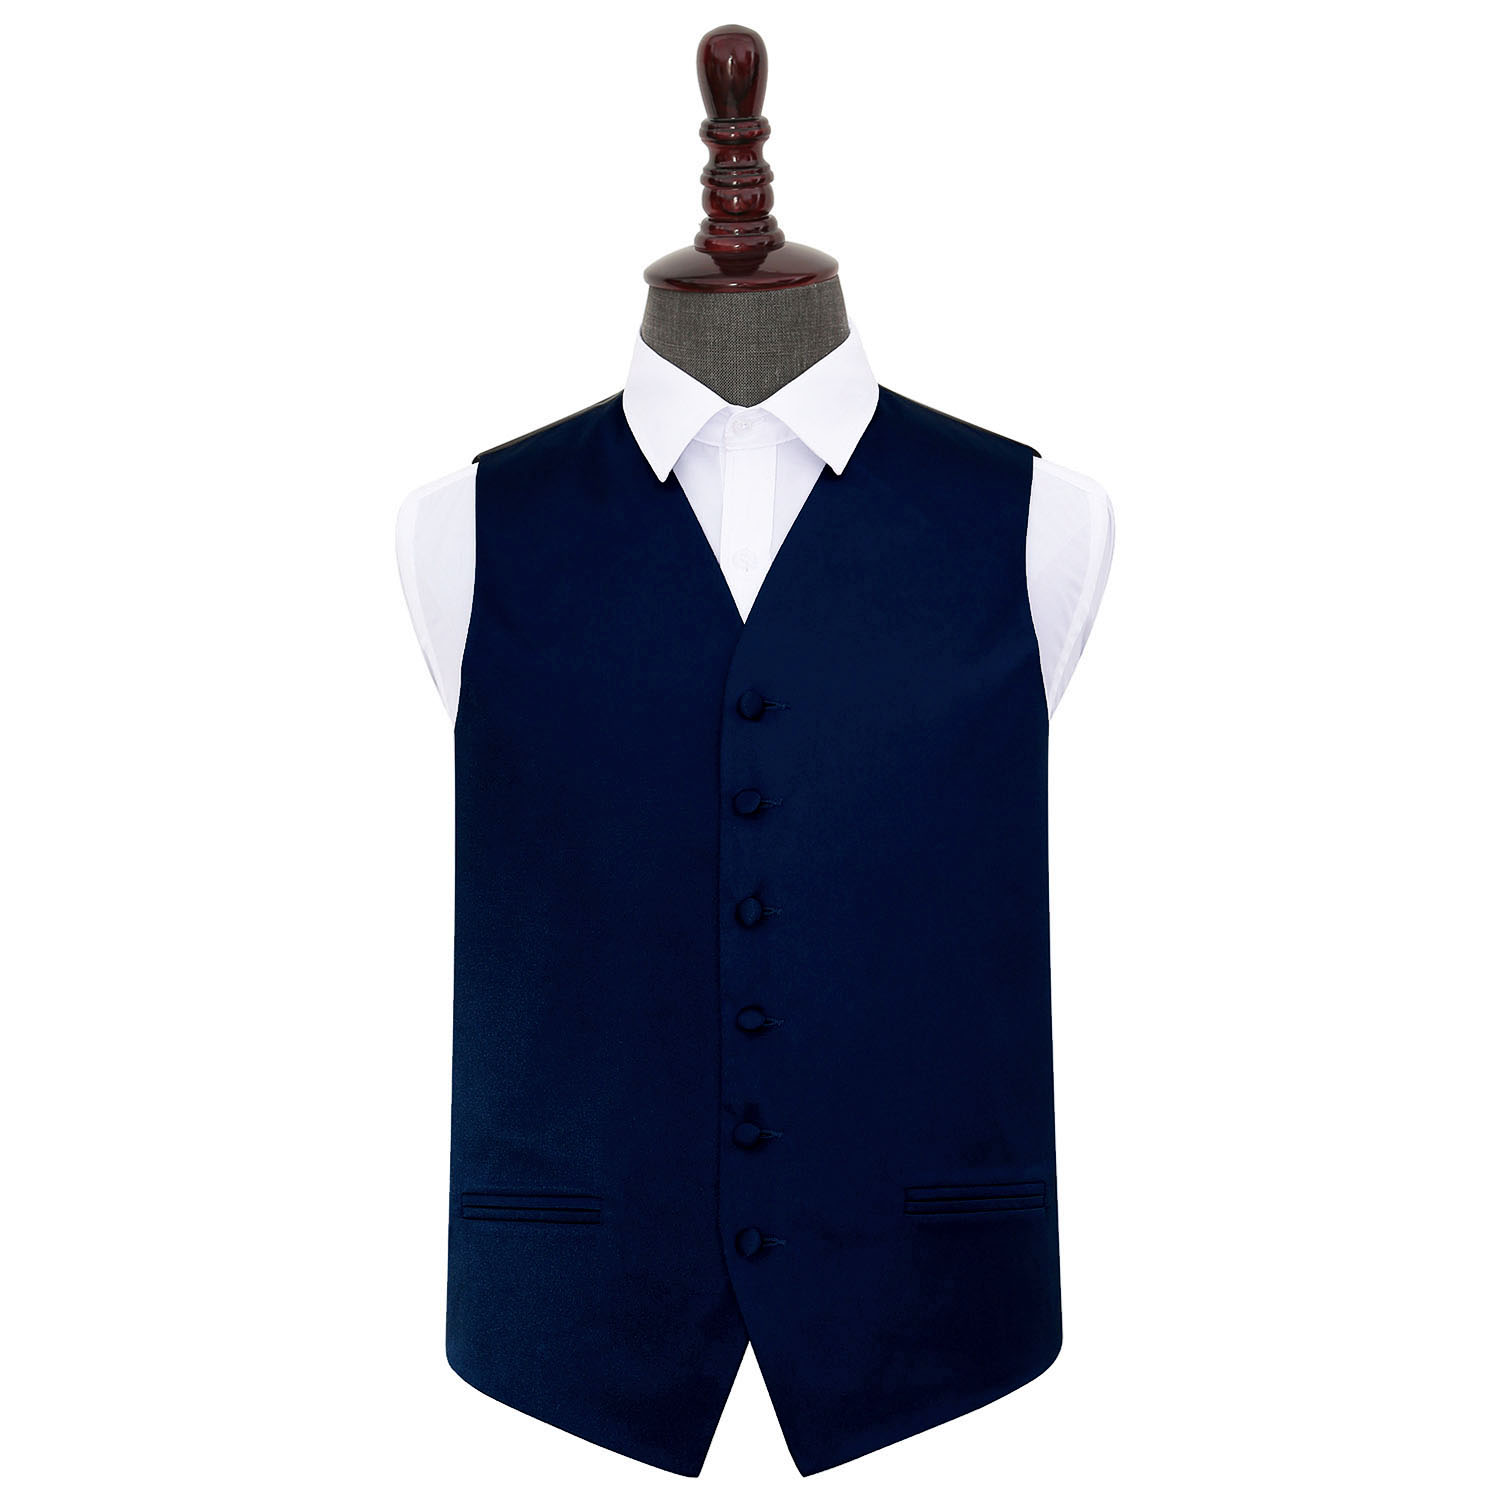 shopnow-bqimqrqk.tk: navy blue waistcoat. this men's suit dress vest waistcoat can match with dress shirt VOBOOM Mens Herringbone Tailored Collar Waistcoat Fullback Wool Tweed Suit Vest. by VOBOOM. $ $ 39 99 Prime. FREE Shipping on eligible orders. Some sizes/colors are Prime eligible.